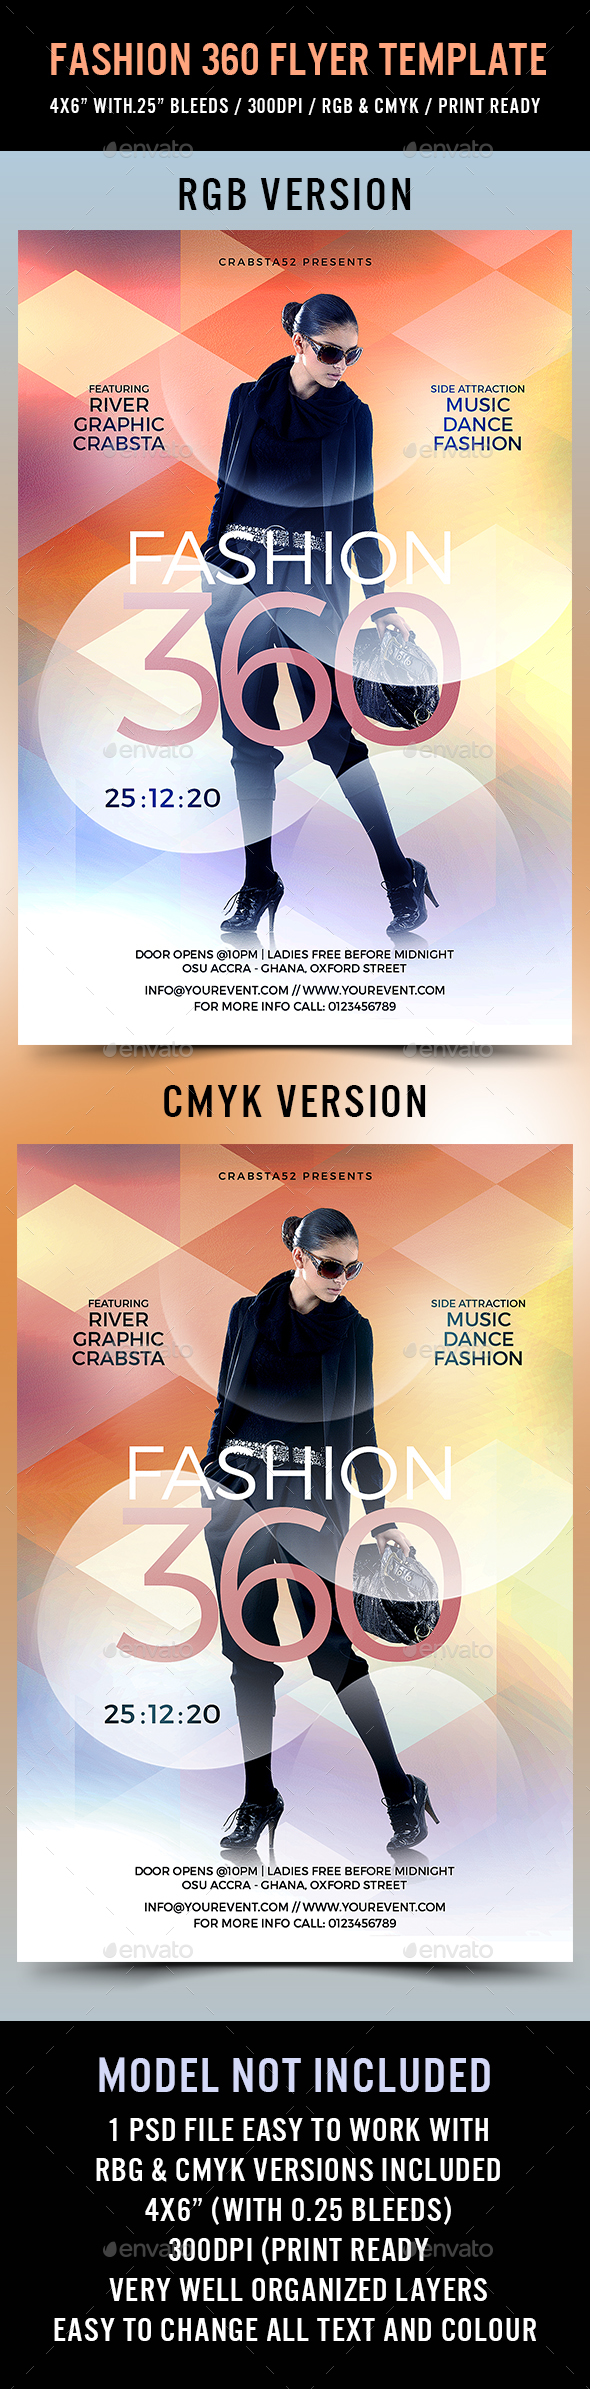 Fashion 360 Flyer Template - Flyers Print Templates